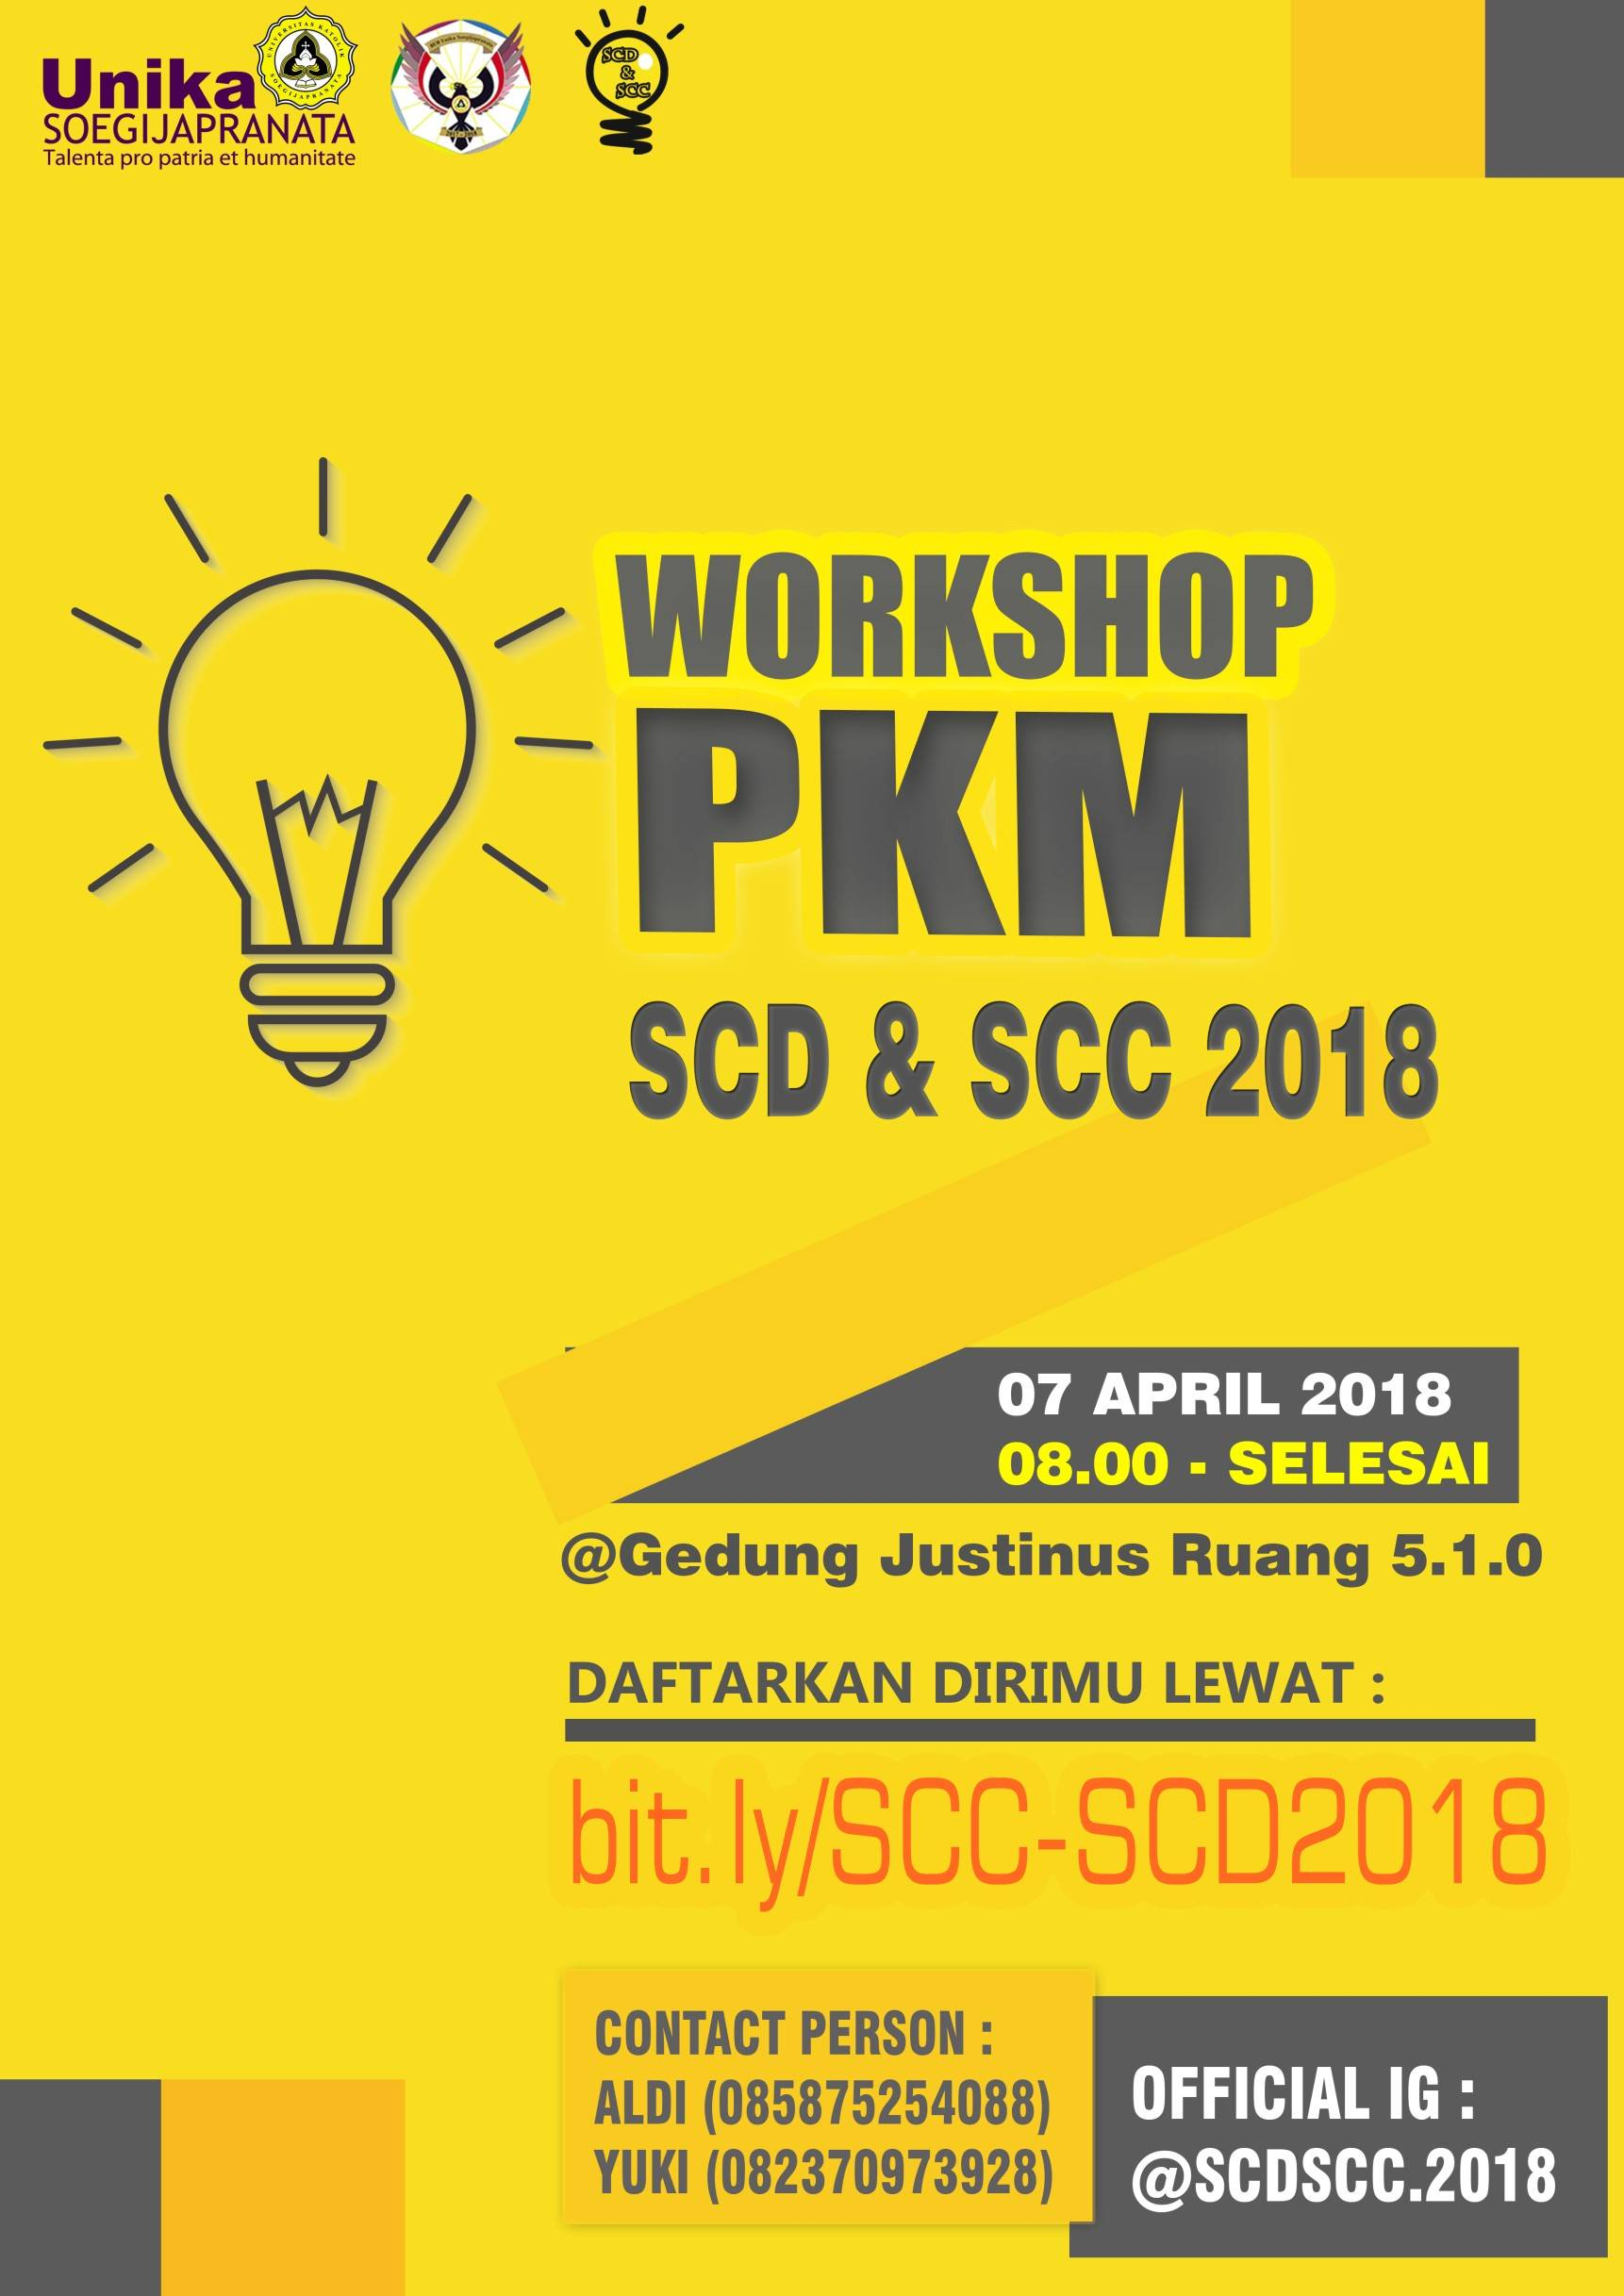 WORKSHOP PKM SCC 2018